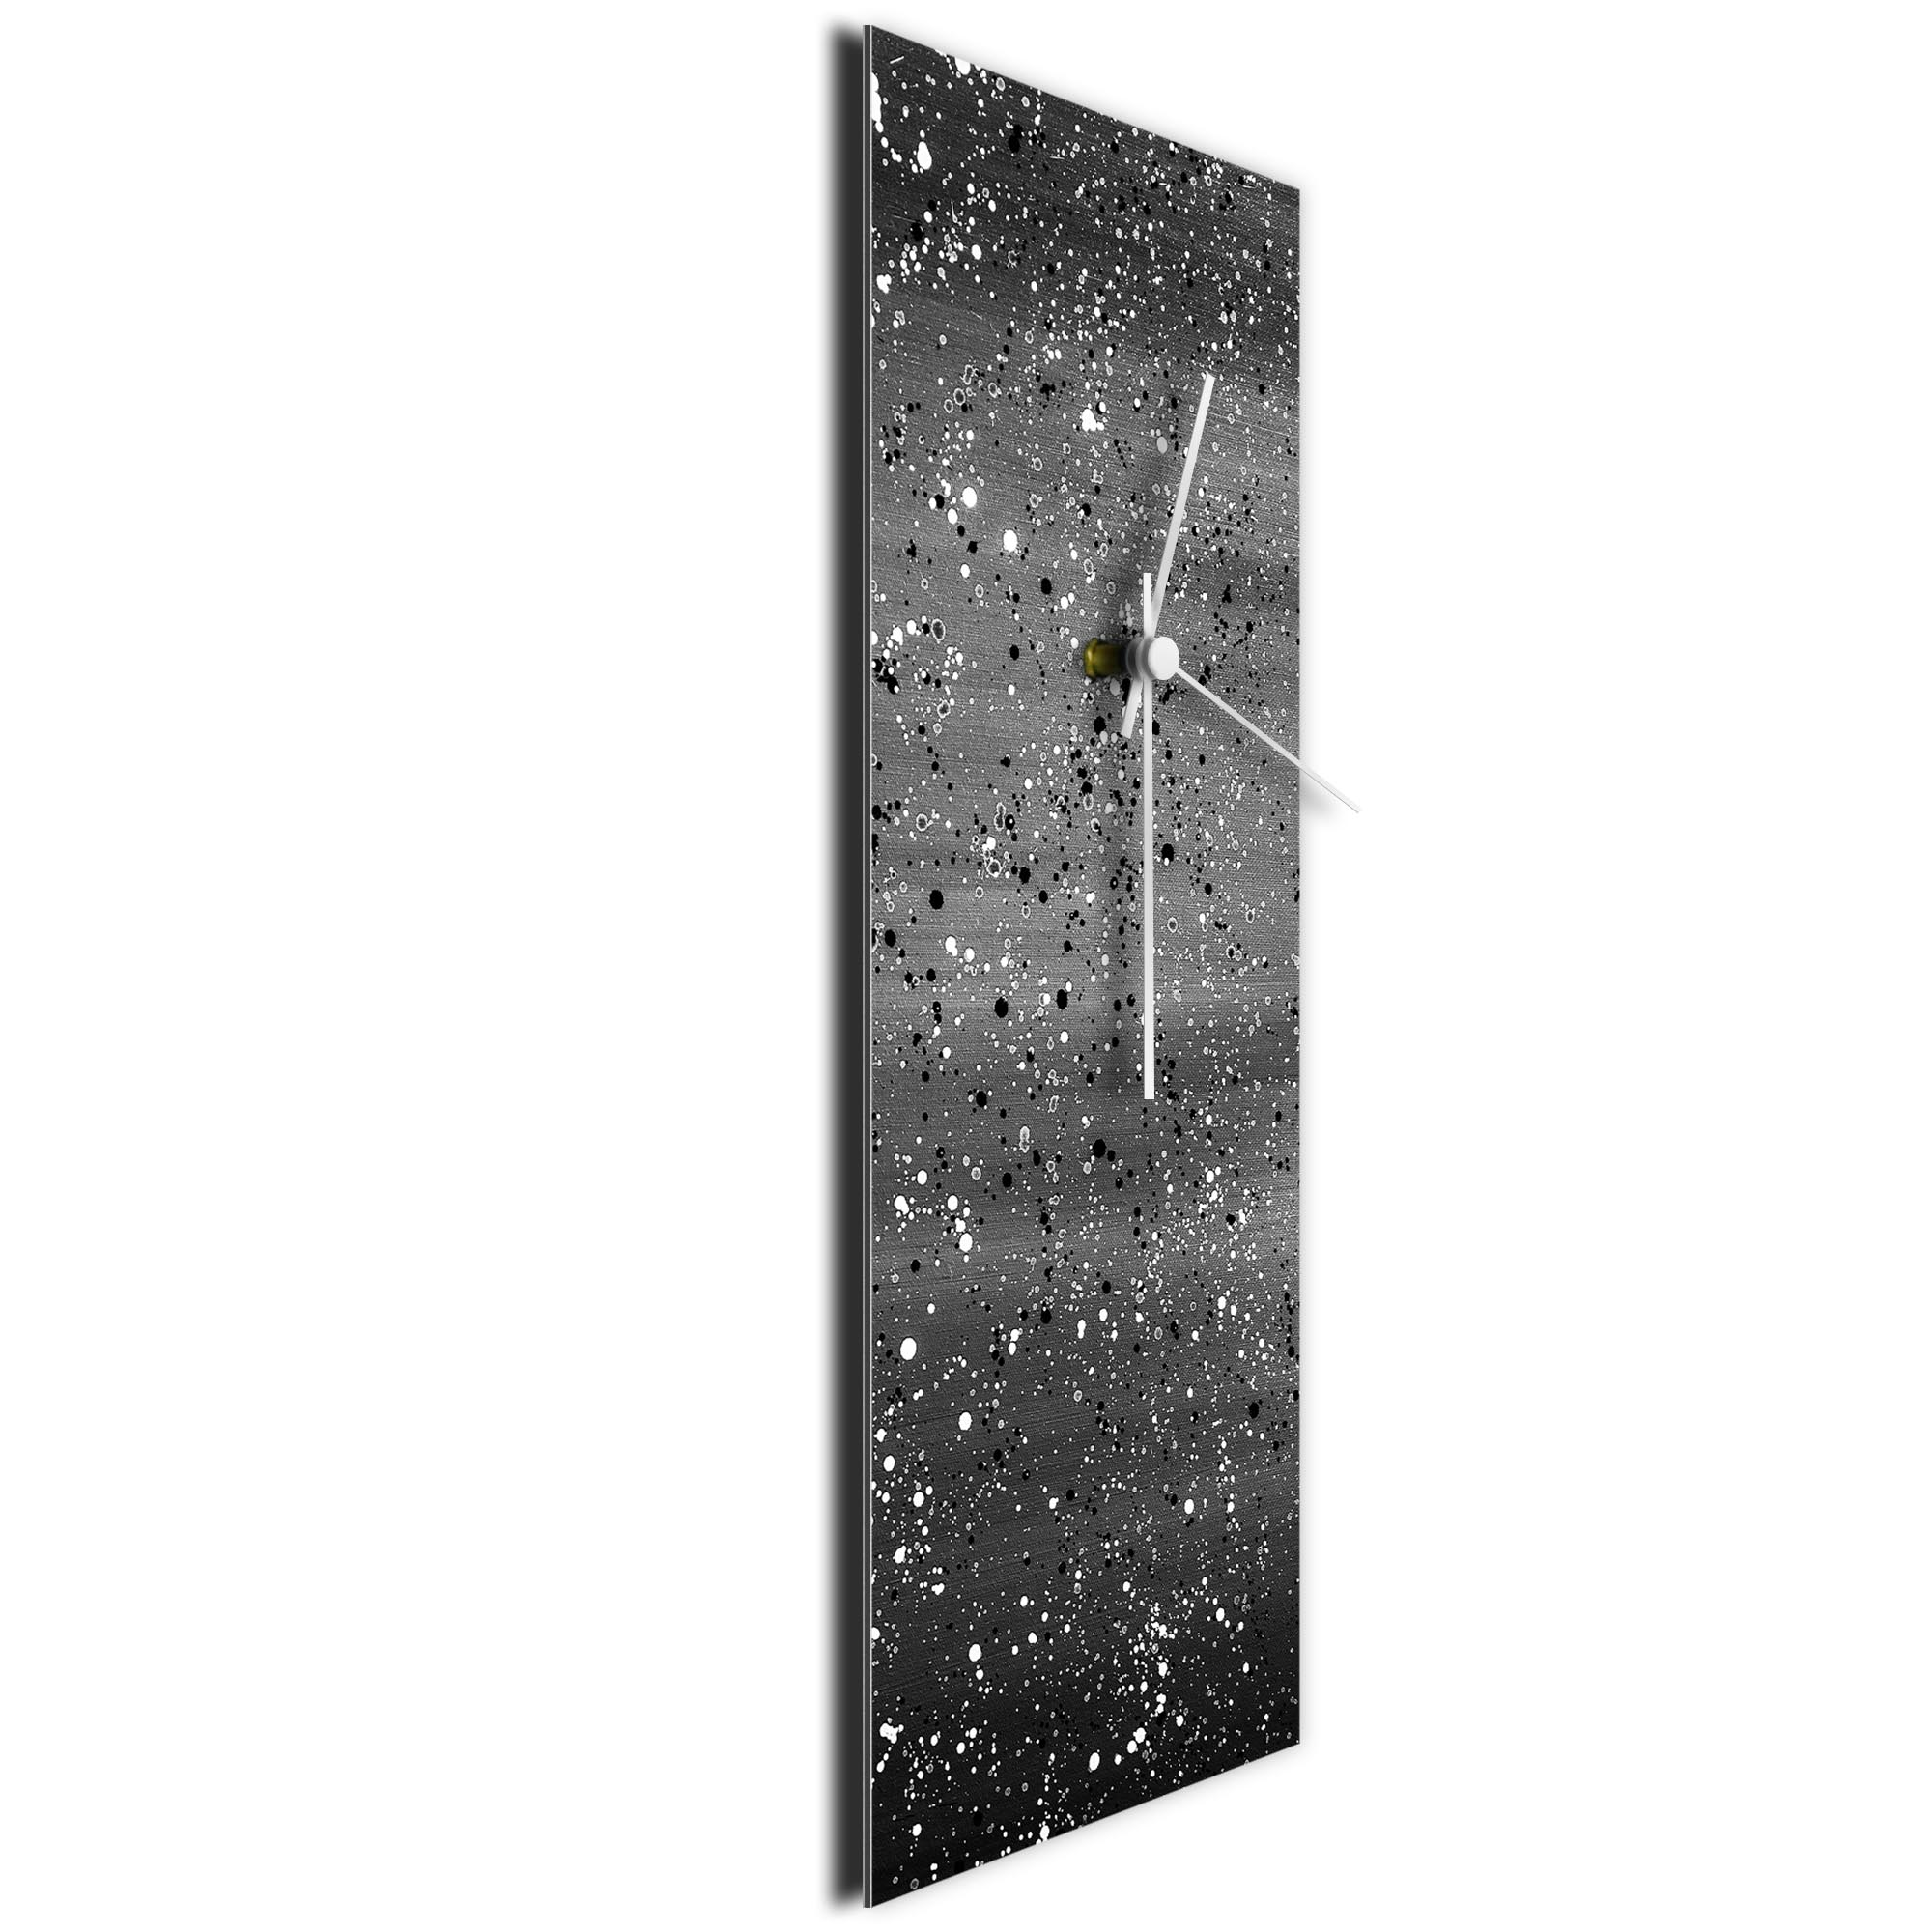 Black Flecked Clock by Mendo Vasilevski - Urban Abstract Home Decor - Image 3